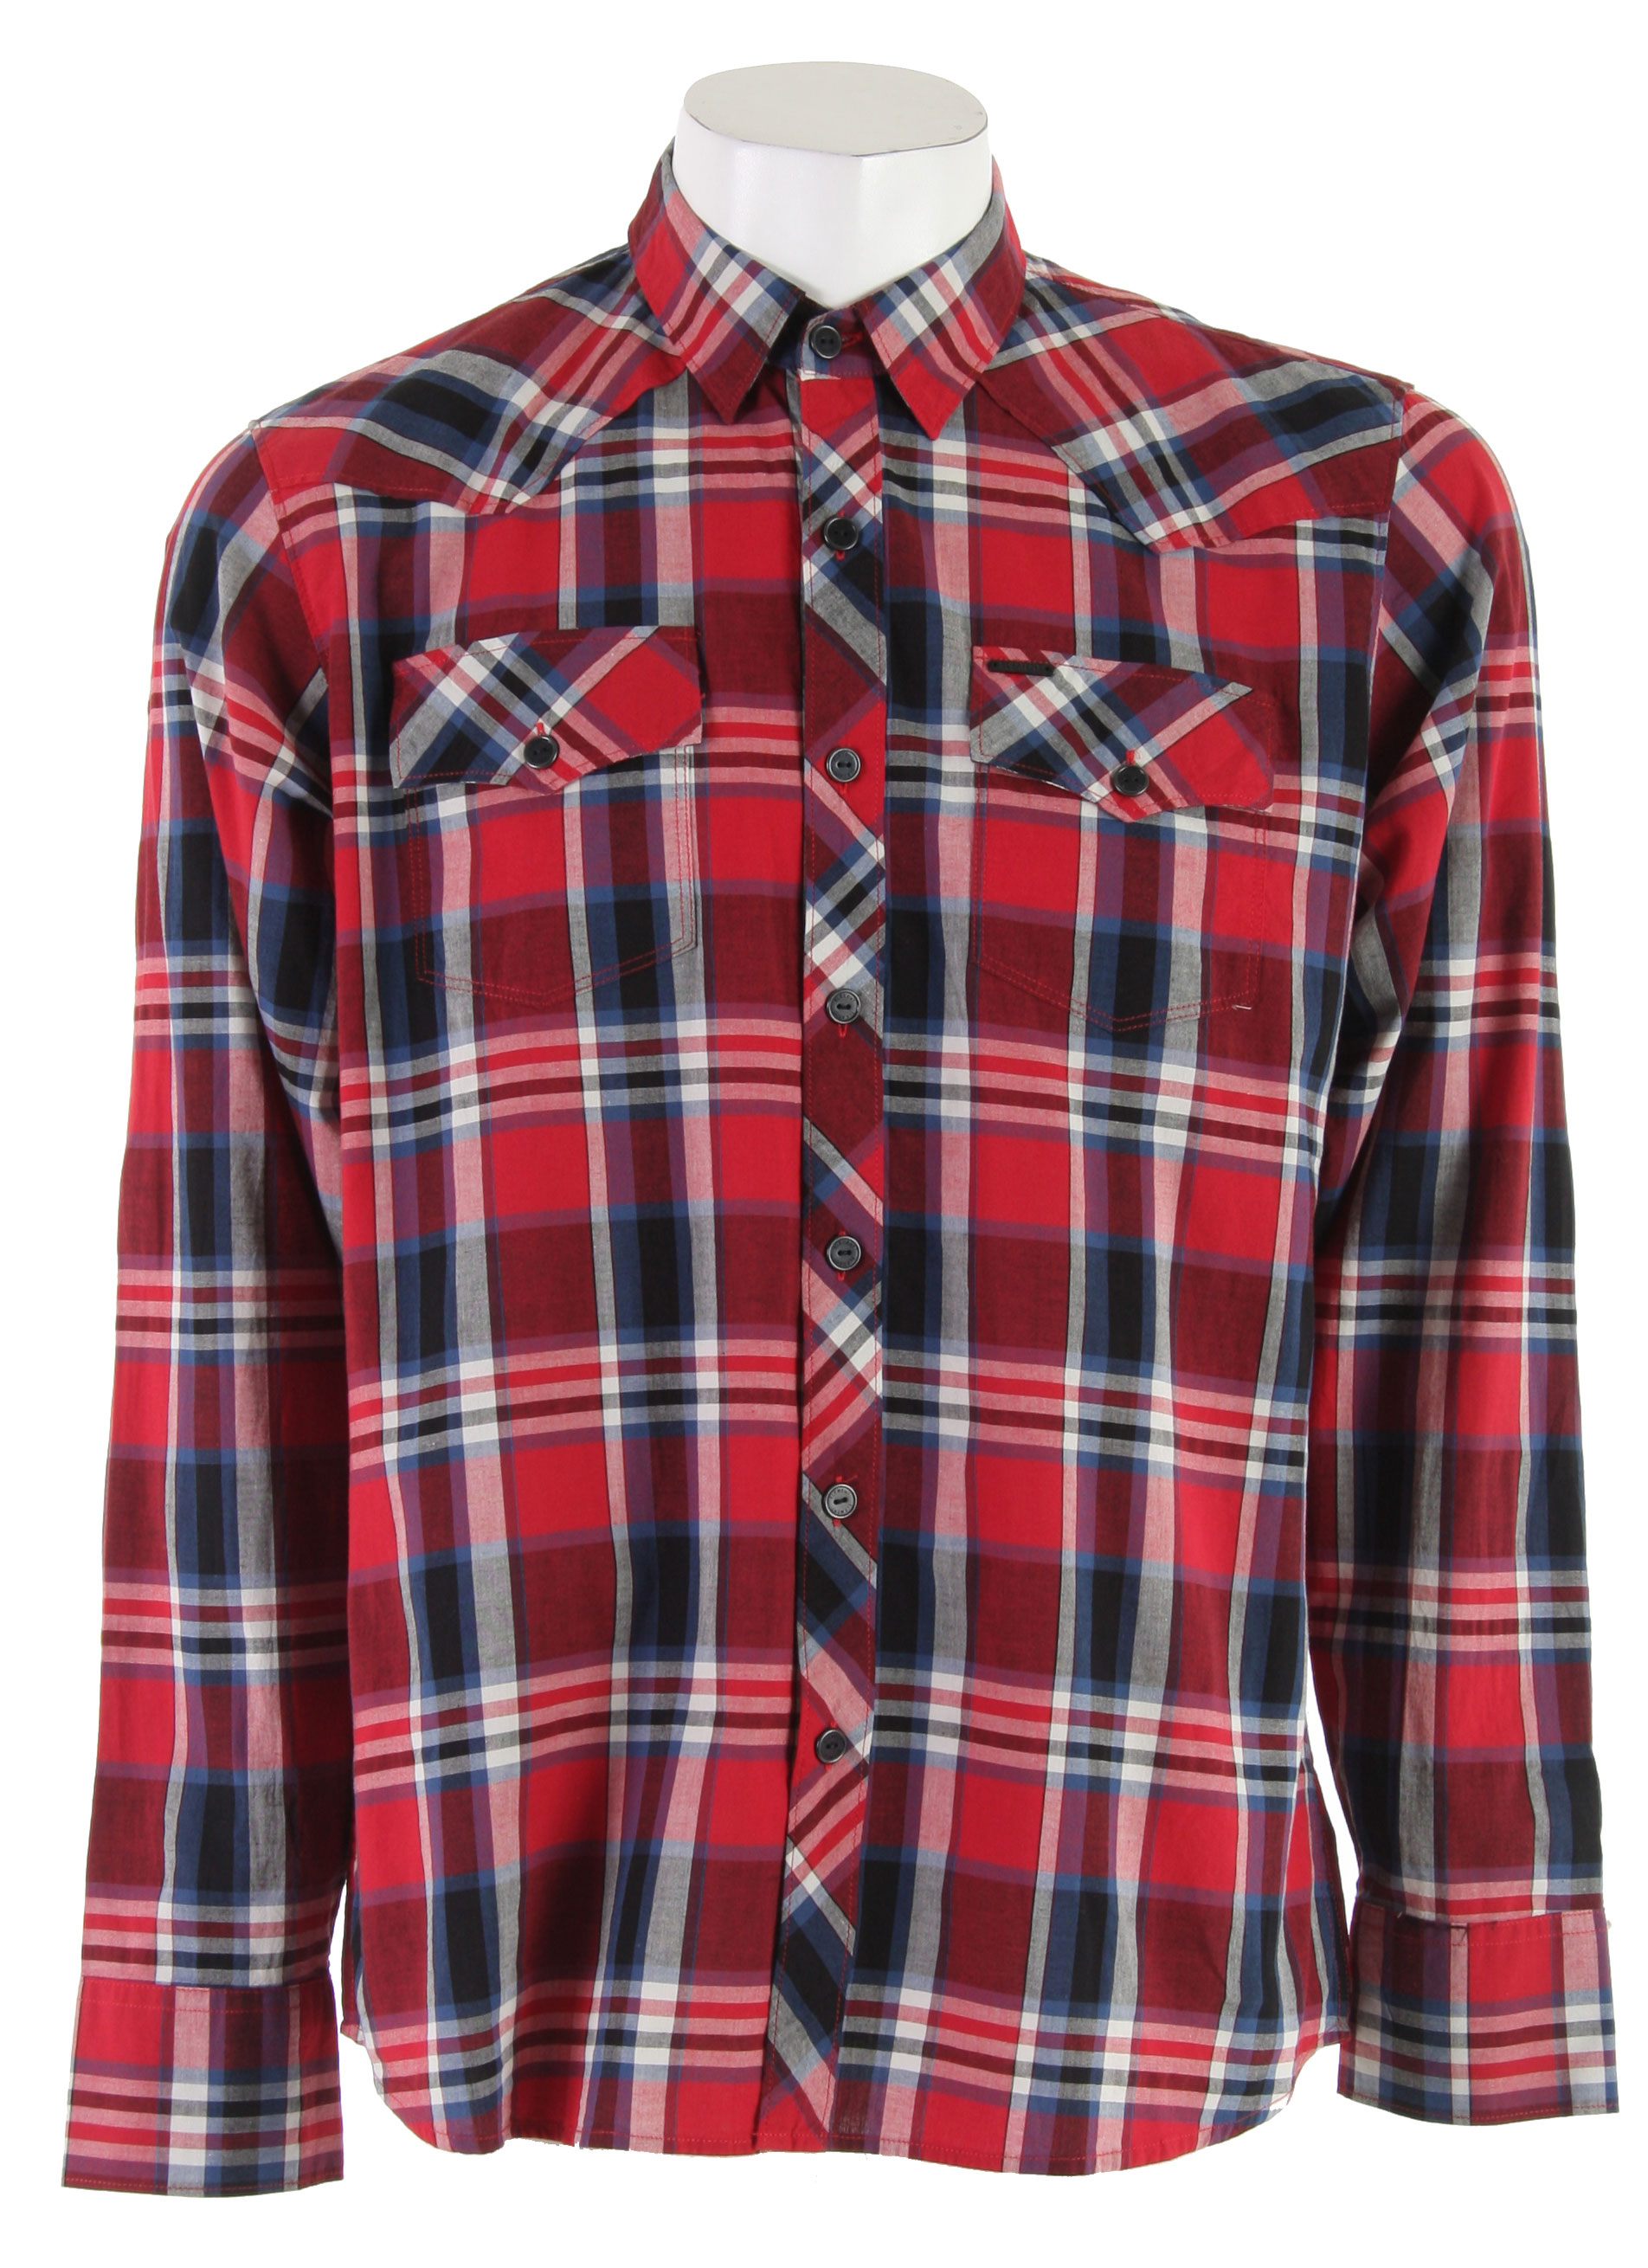 Skateboard let face It,. plaid has always been cool, and there is nothing cooler than red plaid. Now get outside and cut some fire wood, because it is going to be a cold cold winter. Key Features of the Element Weyburn L/S Shirt Red:  Cotton   Regular Fit  regular   button up   2 chest pockets   3 button cuff - $39.95